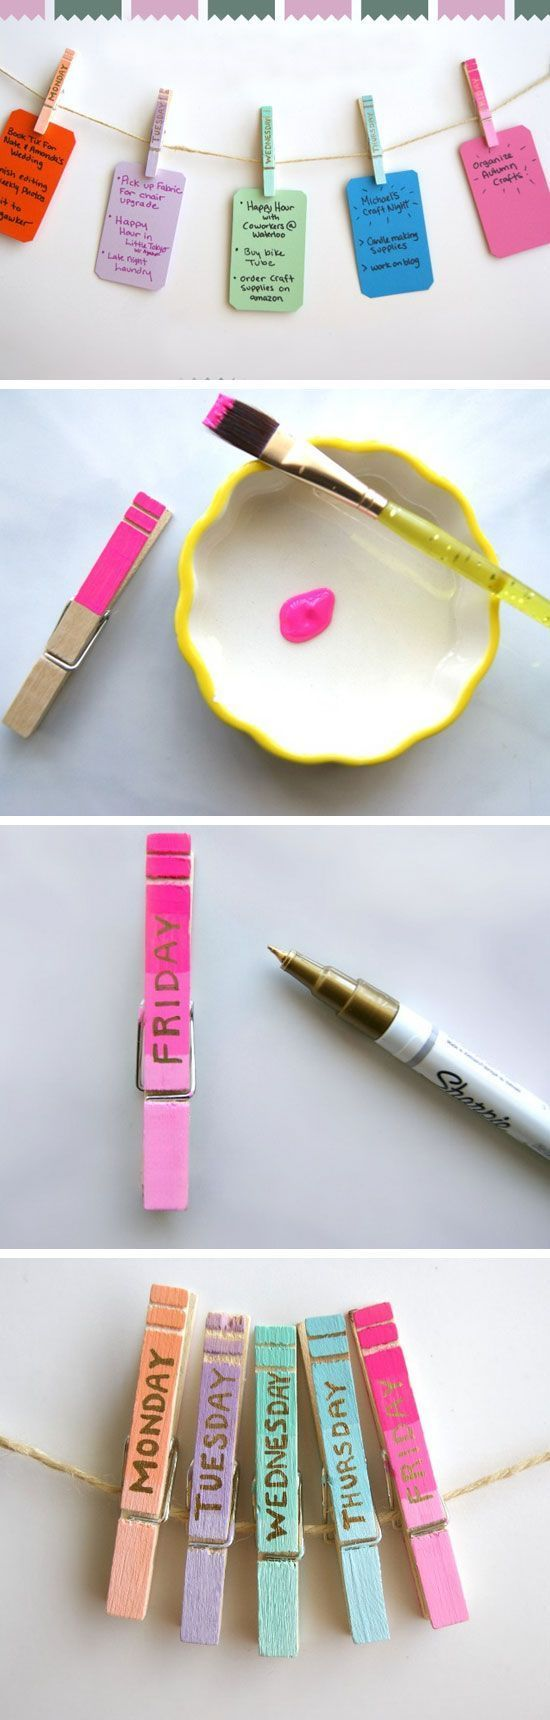 Clothespin Daily Organizers   23 Life Hacks Every Girl Should Know   Easy Organization Ideas for Bedrooms